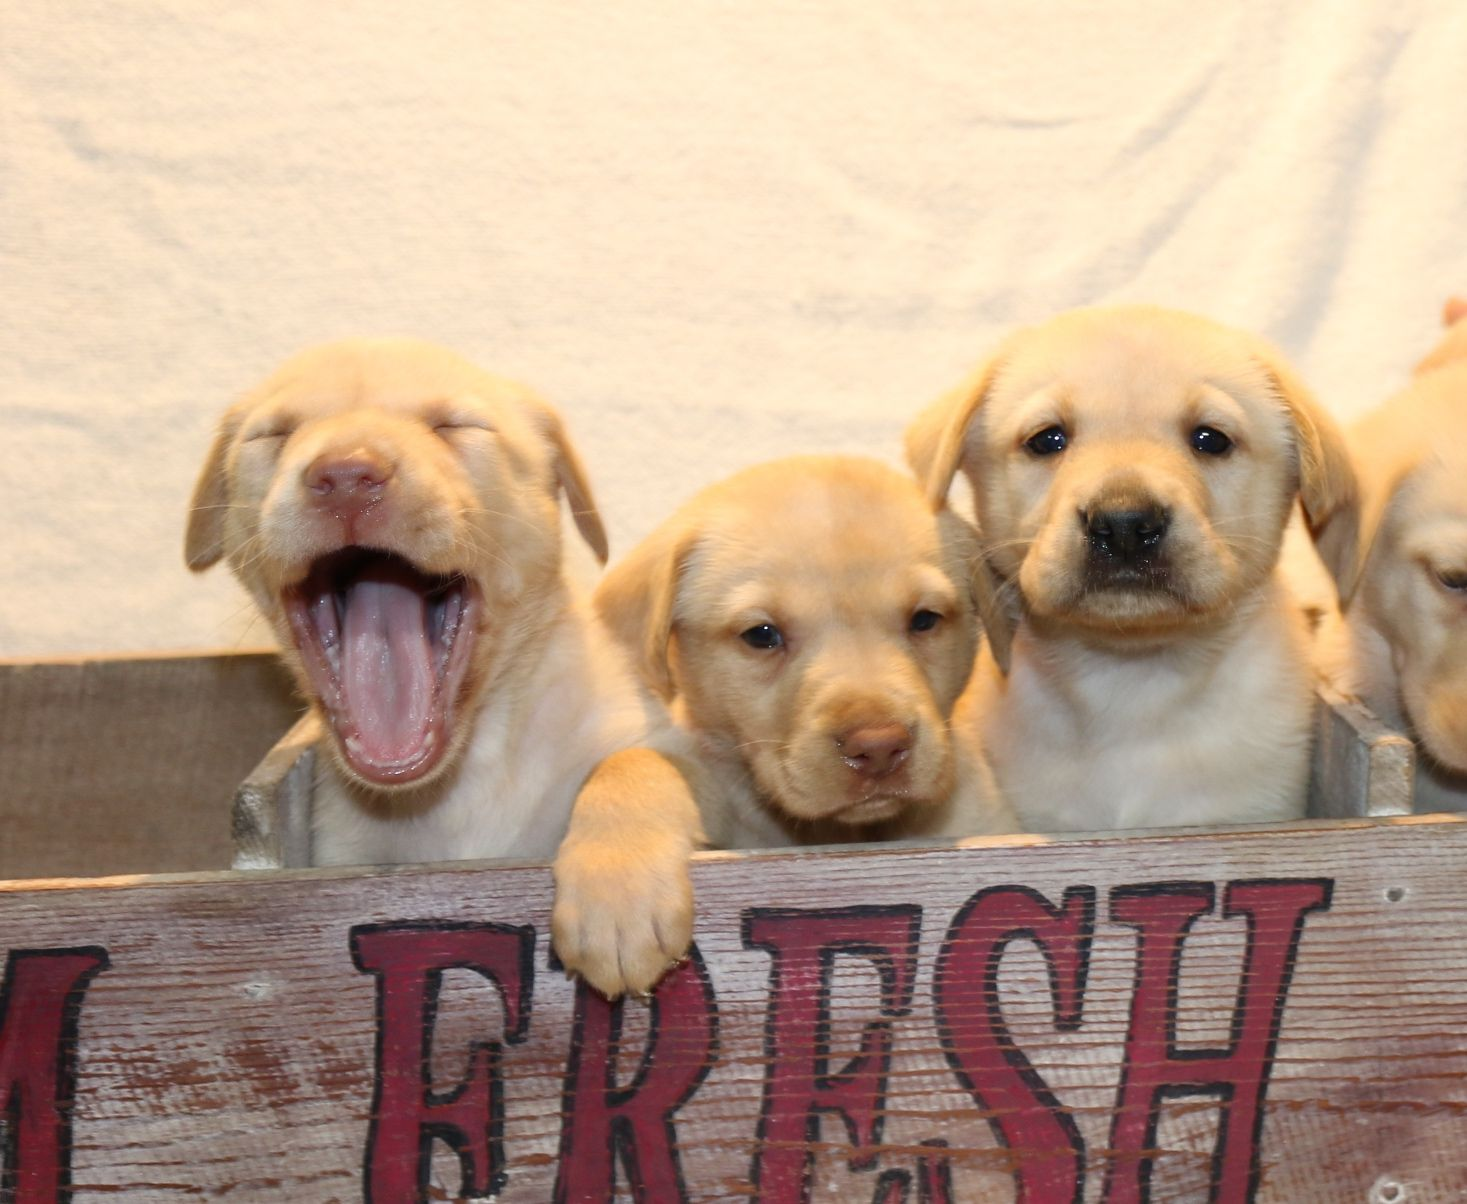 Christmas Puppies for Sale! AKC registered British Labrador